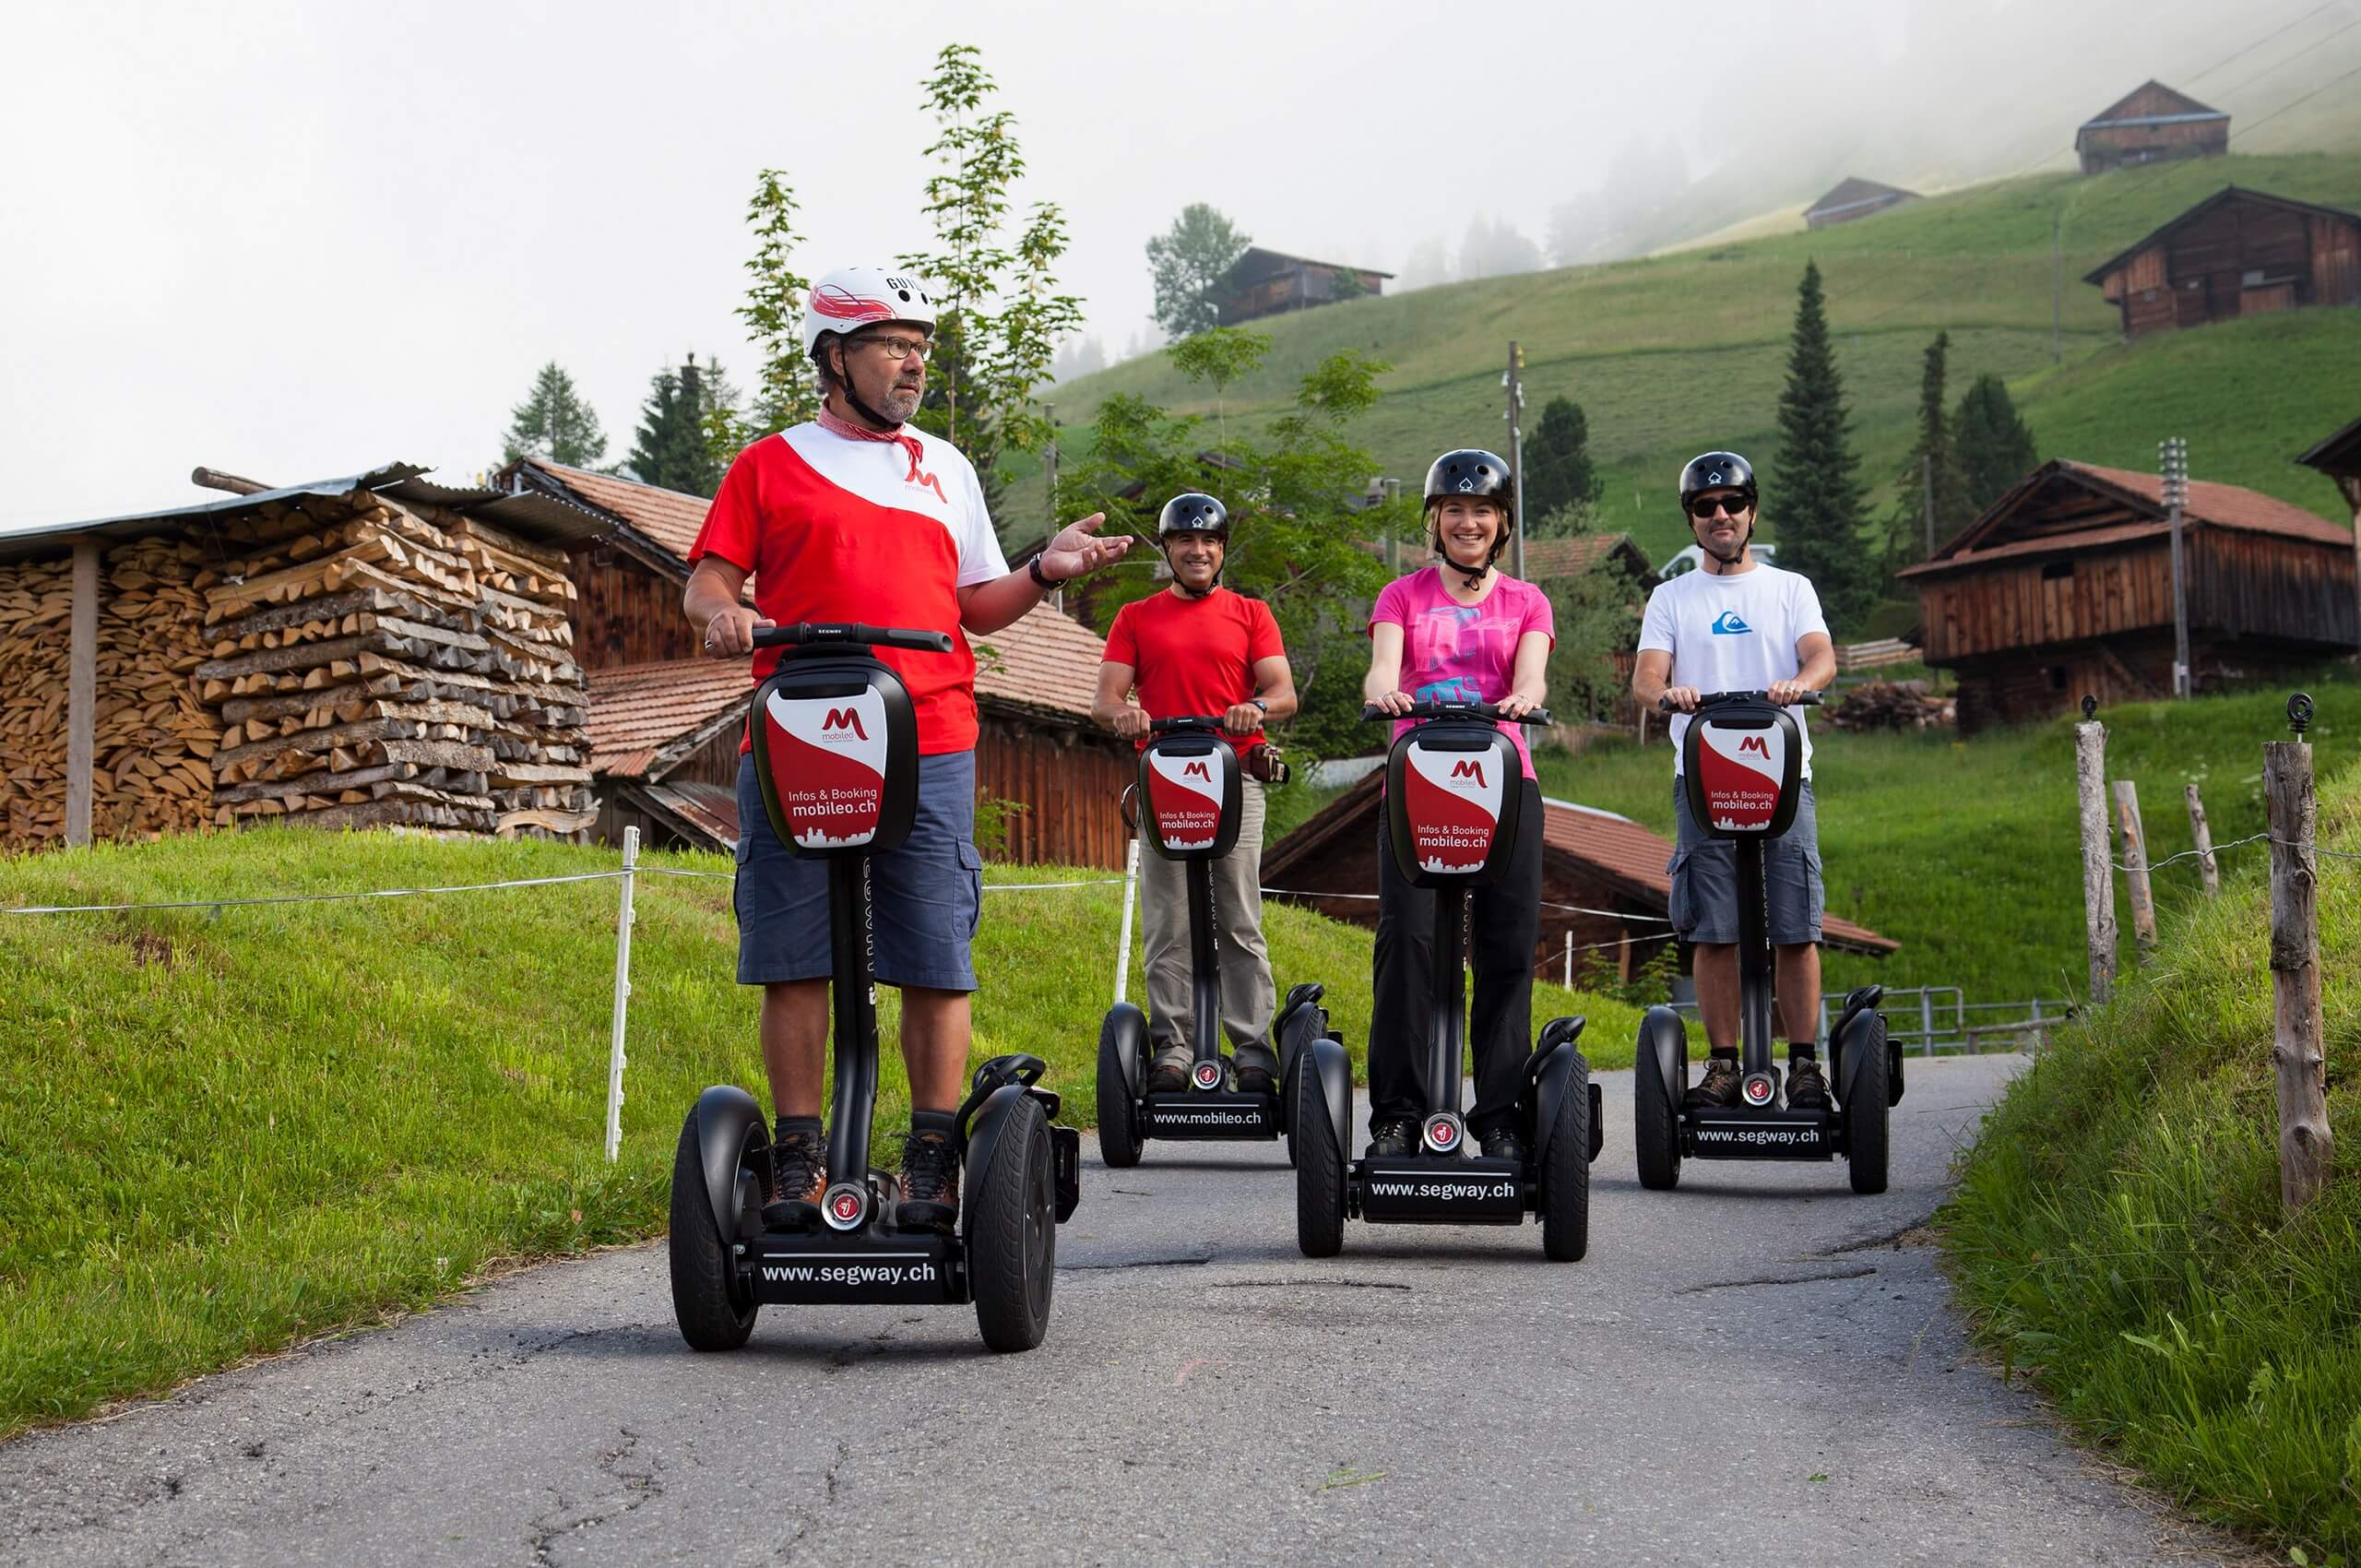 interlaken-segway-sommer-tour-landschaft